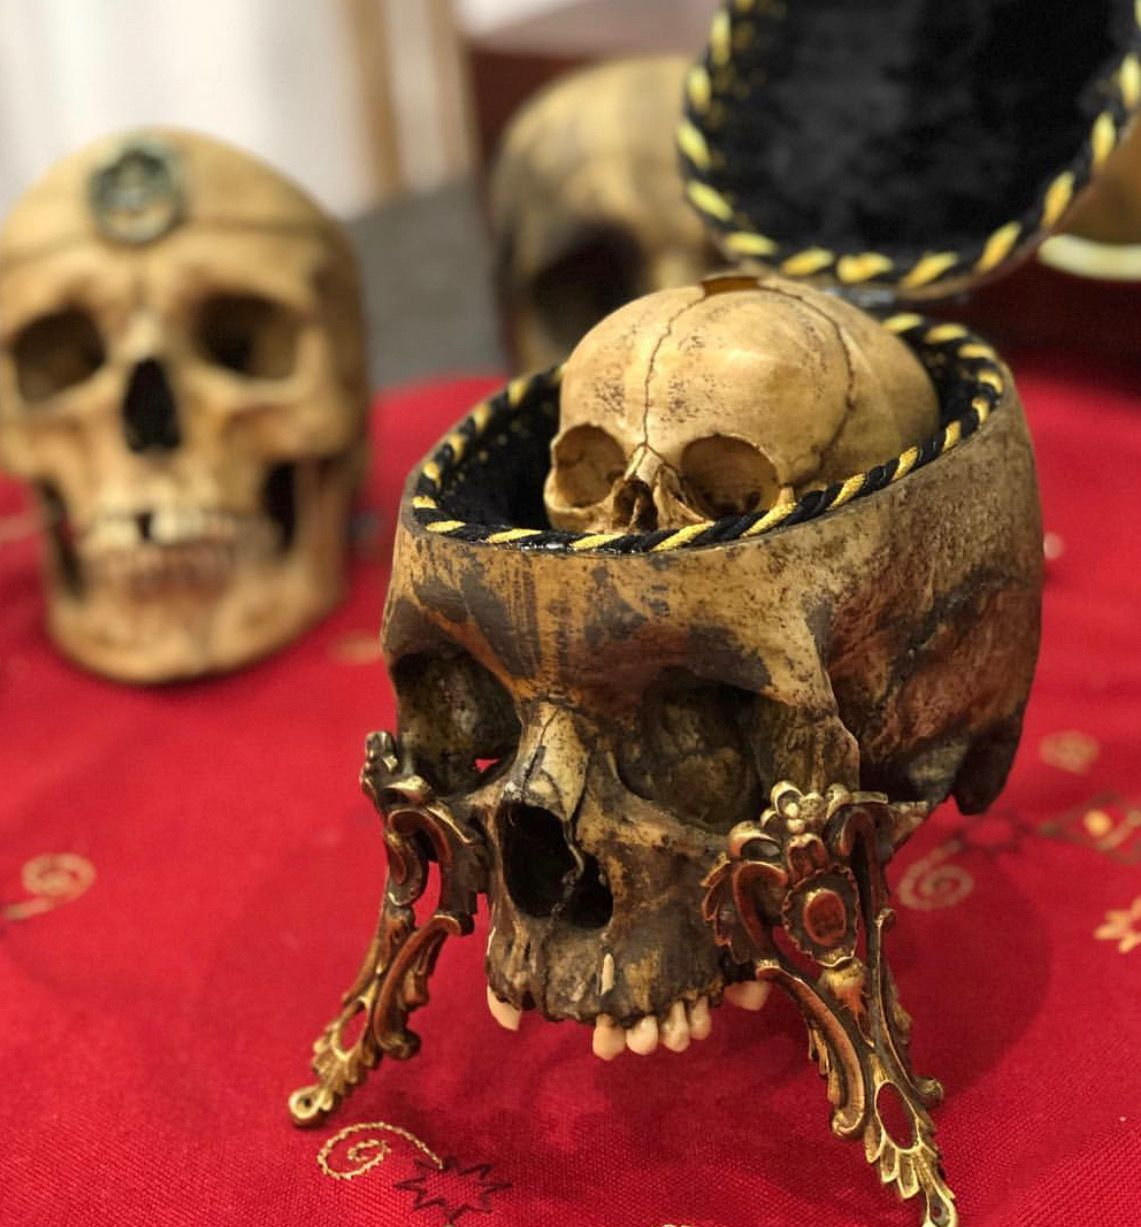 Pin by MASTER THERION on Skull and Bones Skull and bones